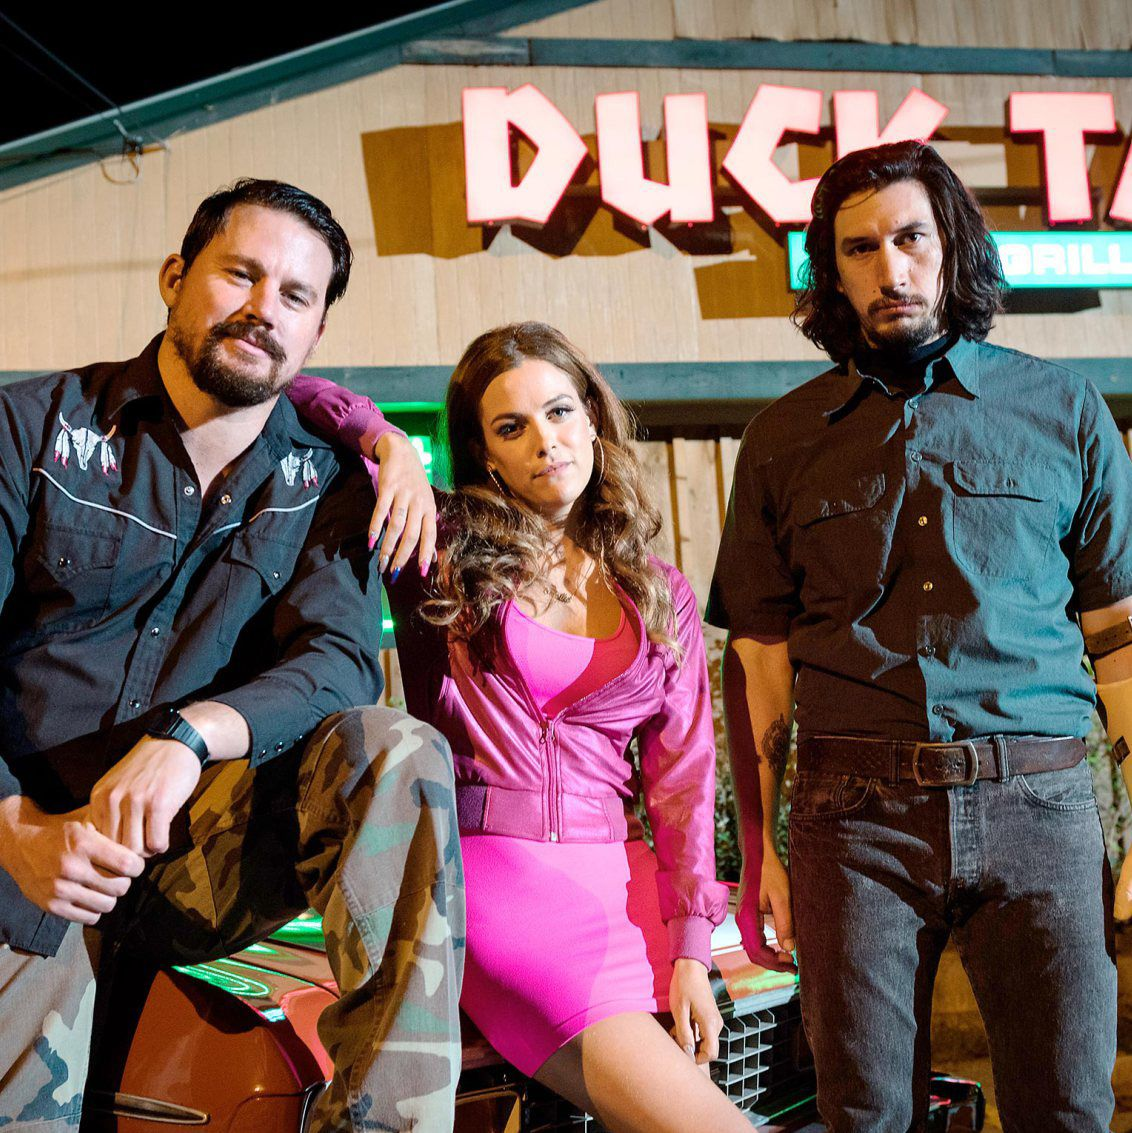 Logan Lucky Steven Soderbergh assembles an all-star cast—Channing Tatum, Adam Driver, Daniel Craig, Riley Keough, Hilary Swank, and more—for this southern-fried heist film about two brothers scheming to rob the Charlotte Motor Speedway.